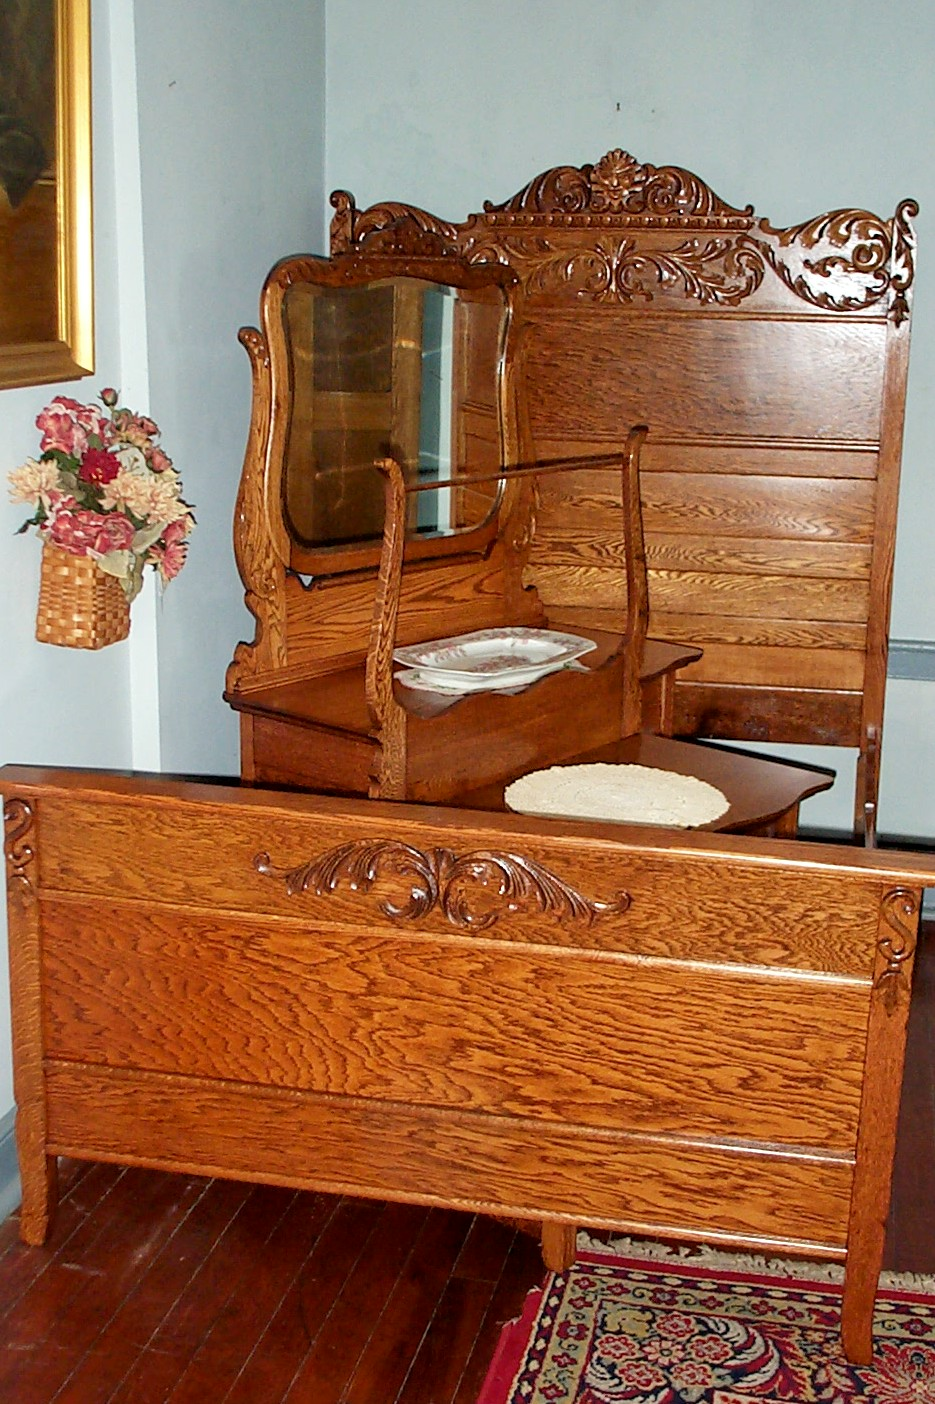 Three Piece Solid Oak Bedroom Set !! - For Sale - Three Piece Solid Oak Bedroom Set !! For Sale Antiques.com